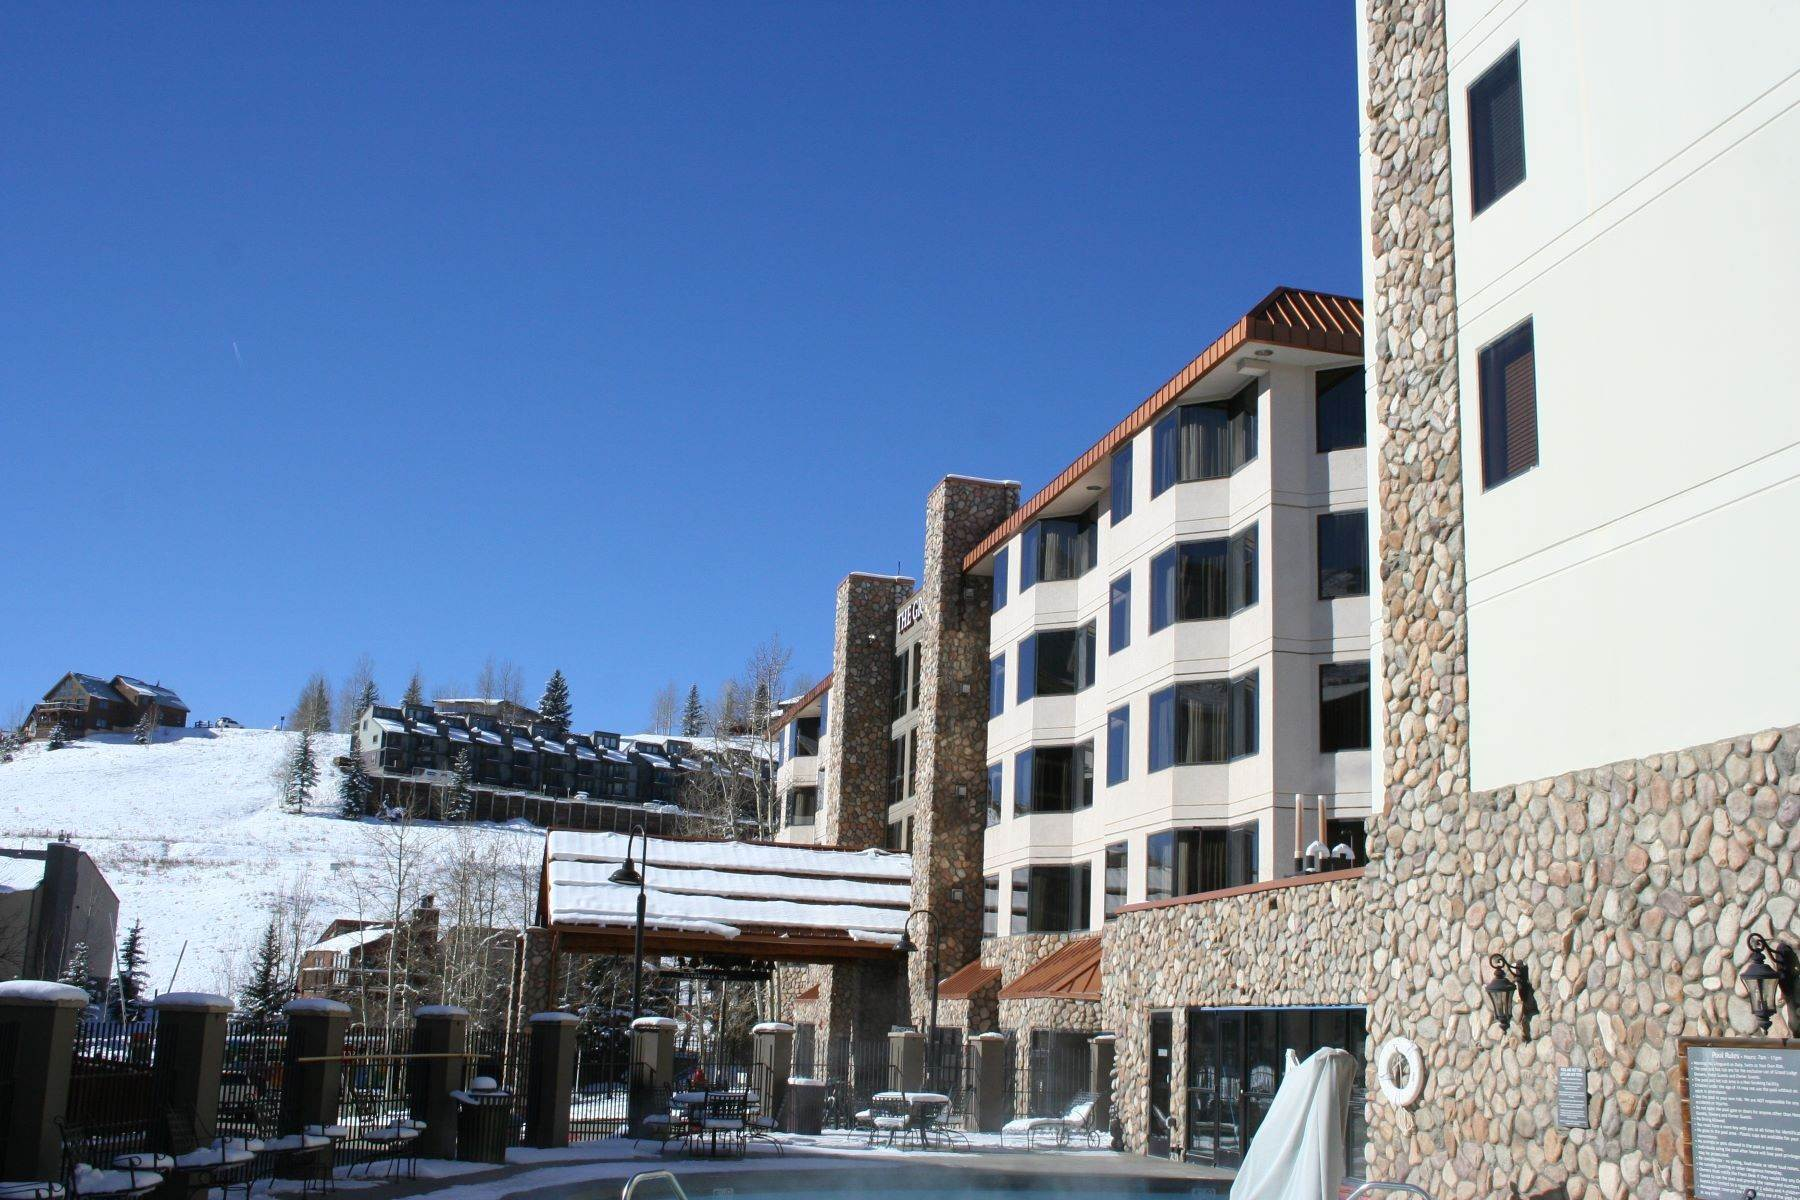 Property for Active at King Suite Unit with Great Views and Easy Ski Access 6 Emmons Road, Unit 568 Mount Crested Butte, Colorado 81225 United States